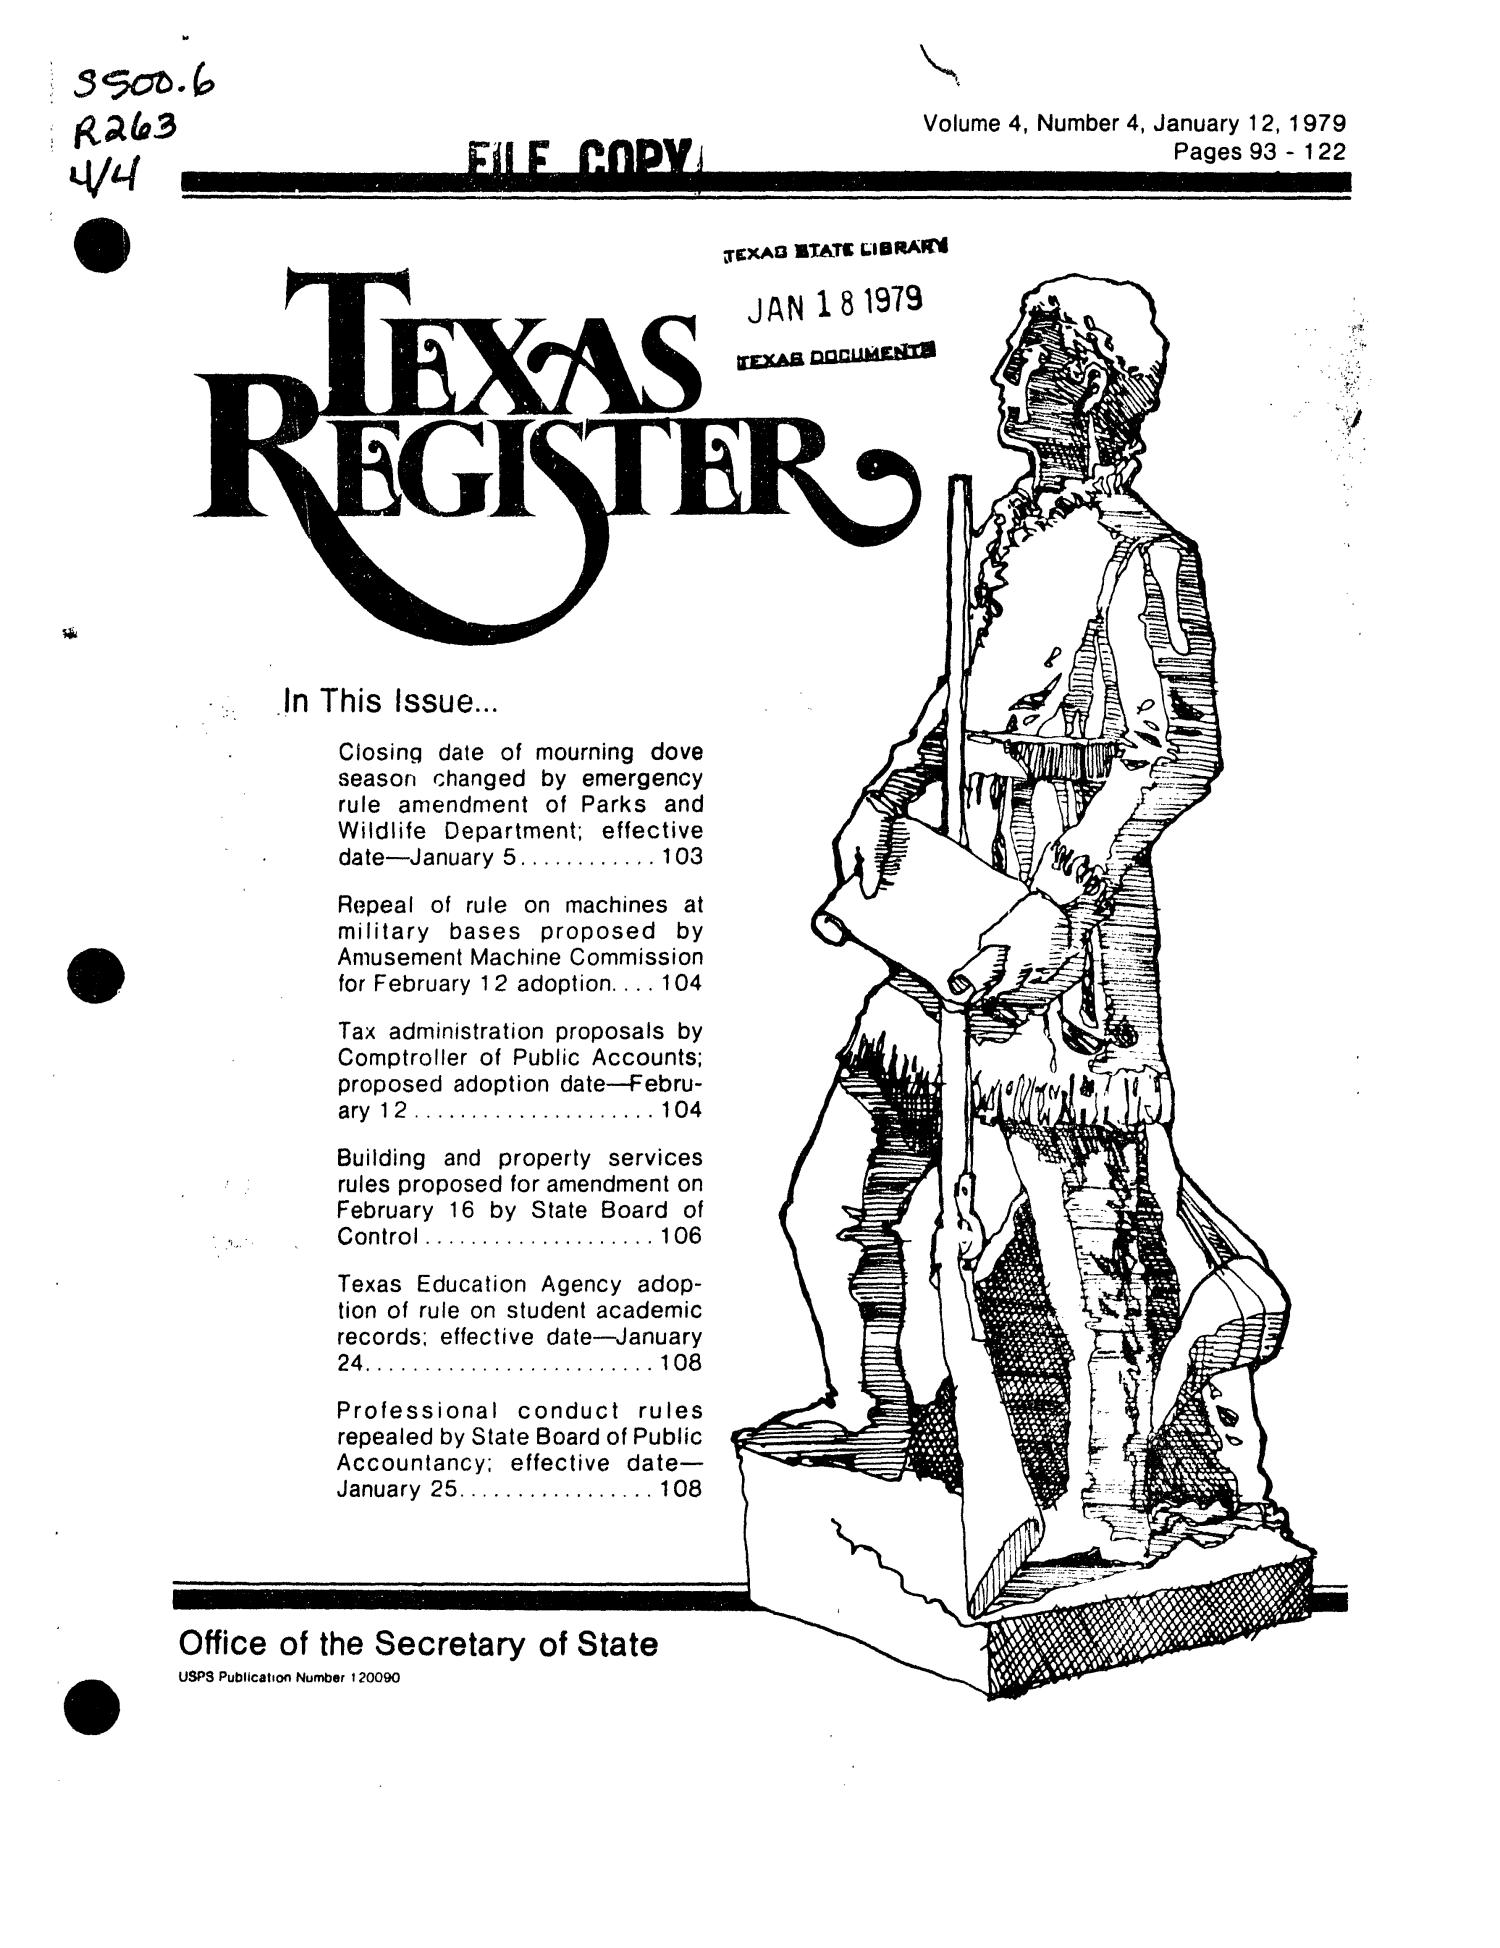 Texas Register, Volume 4, Number 4, Pages 93-122, January 12, 1979                                                                                                      Title Page